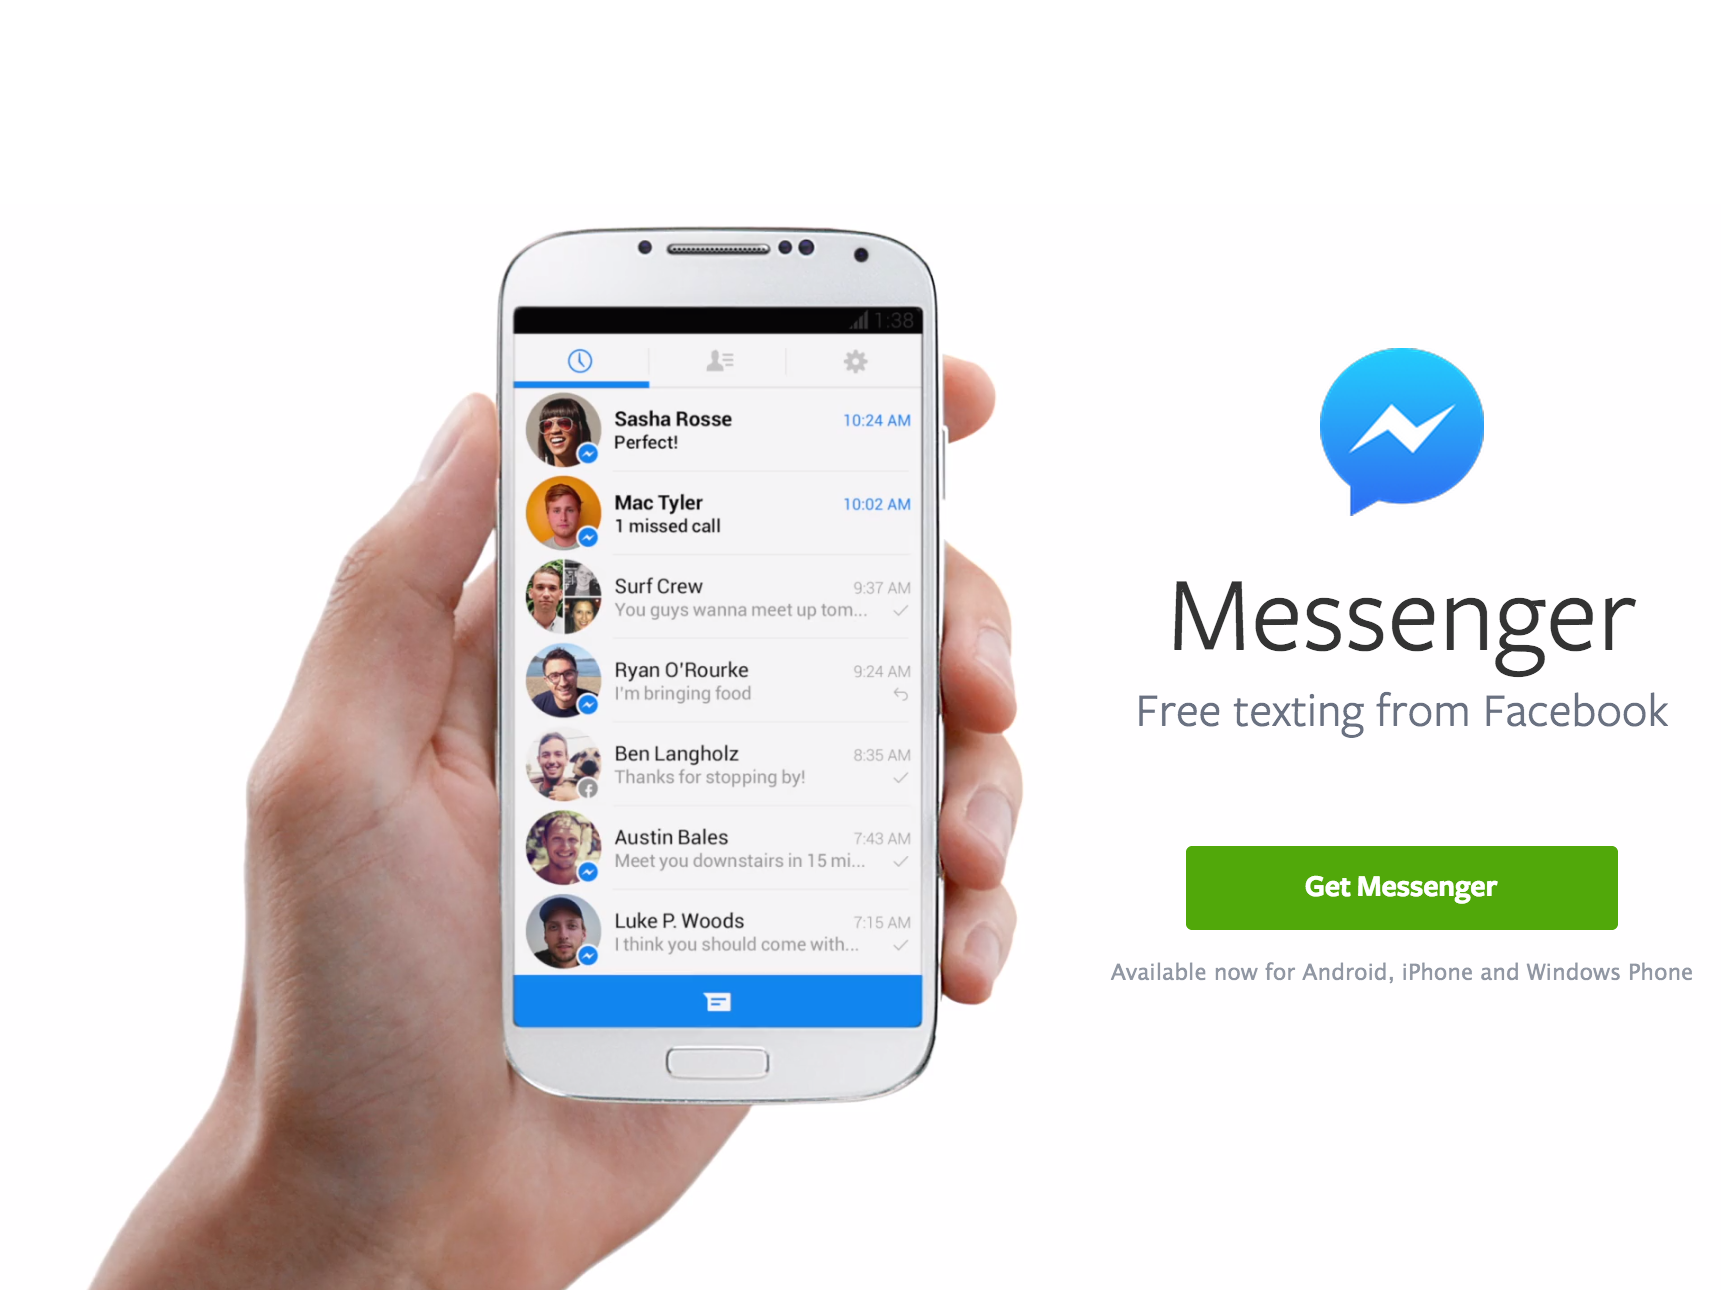 Facebook Messenger at 800 million users